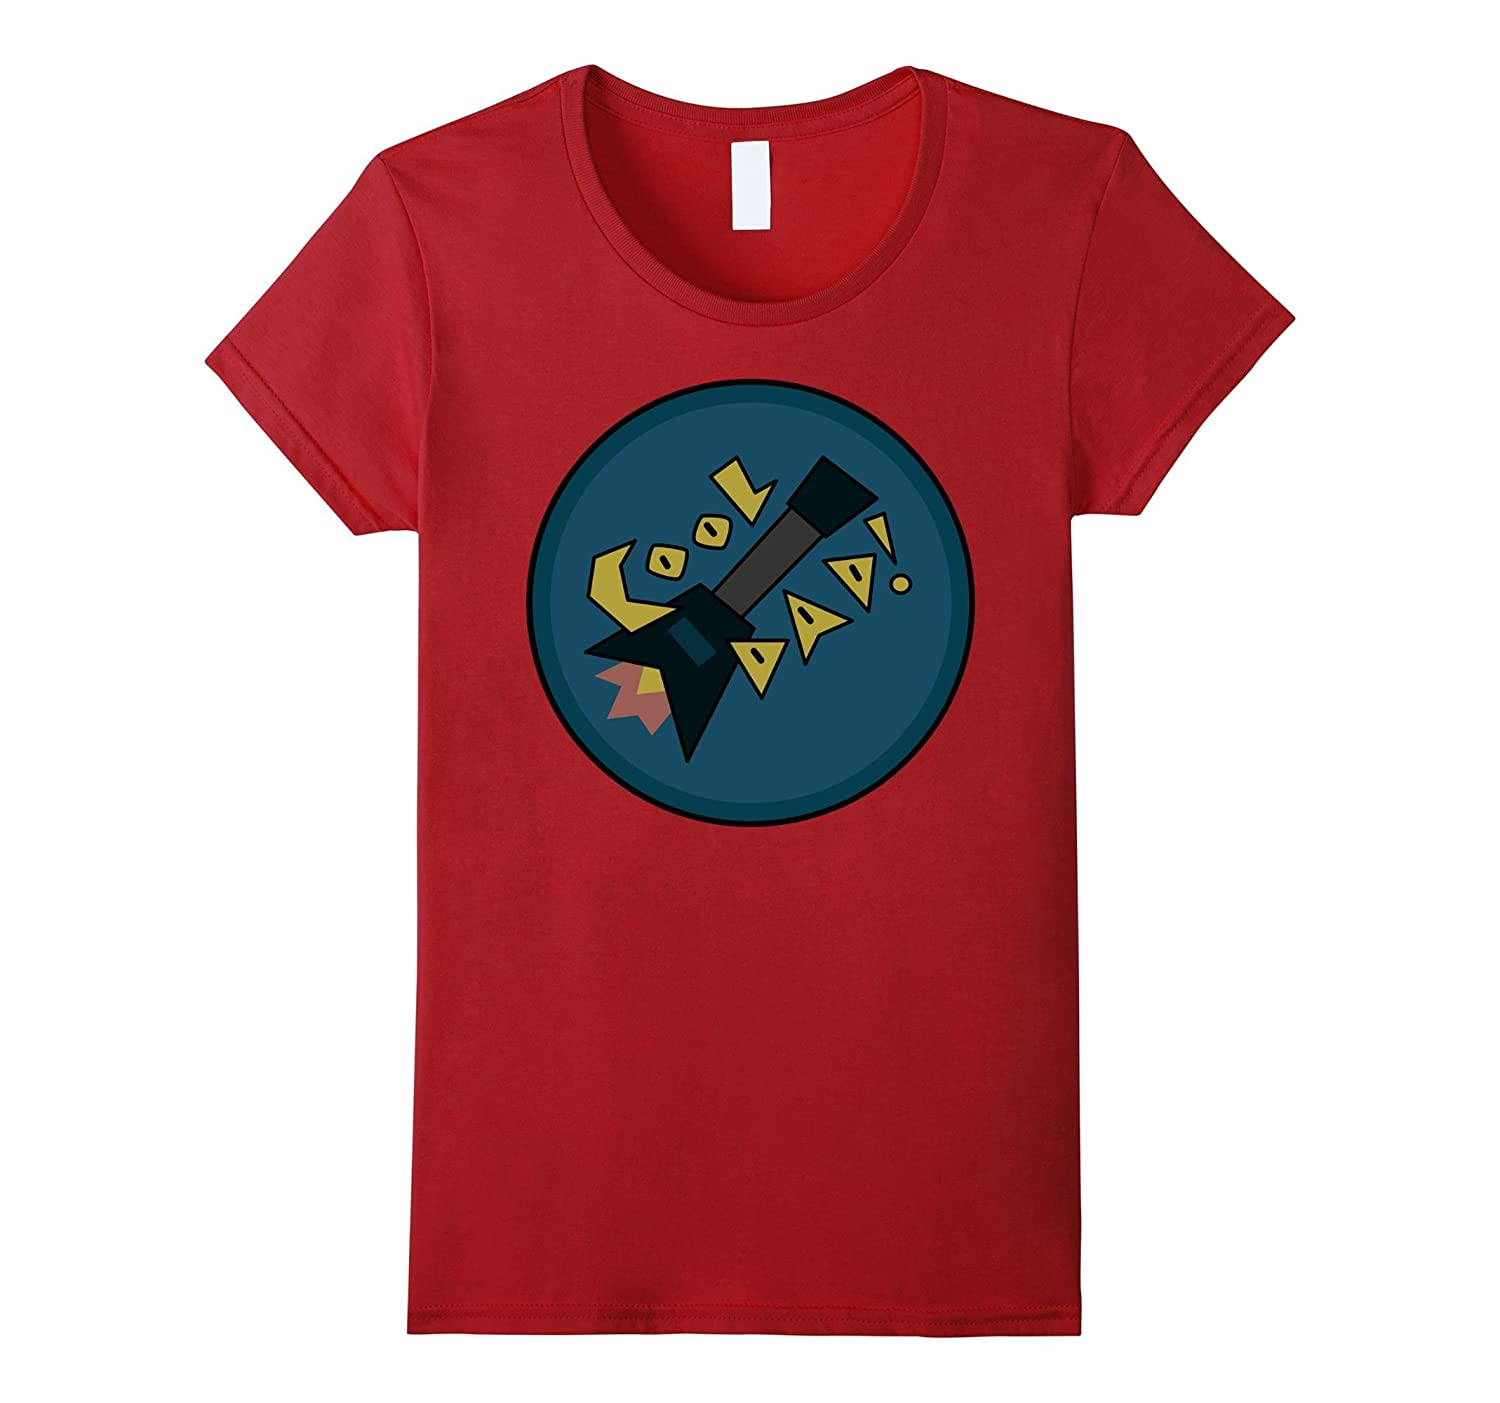 CN Steven Universe Cool Dad Guitar Graphic T-Shirt